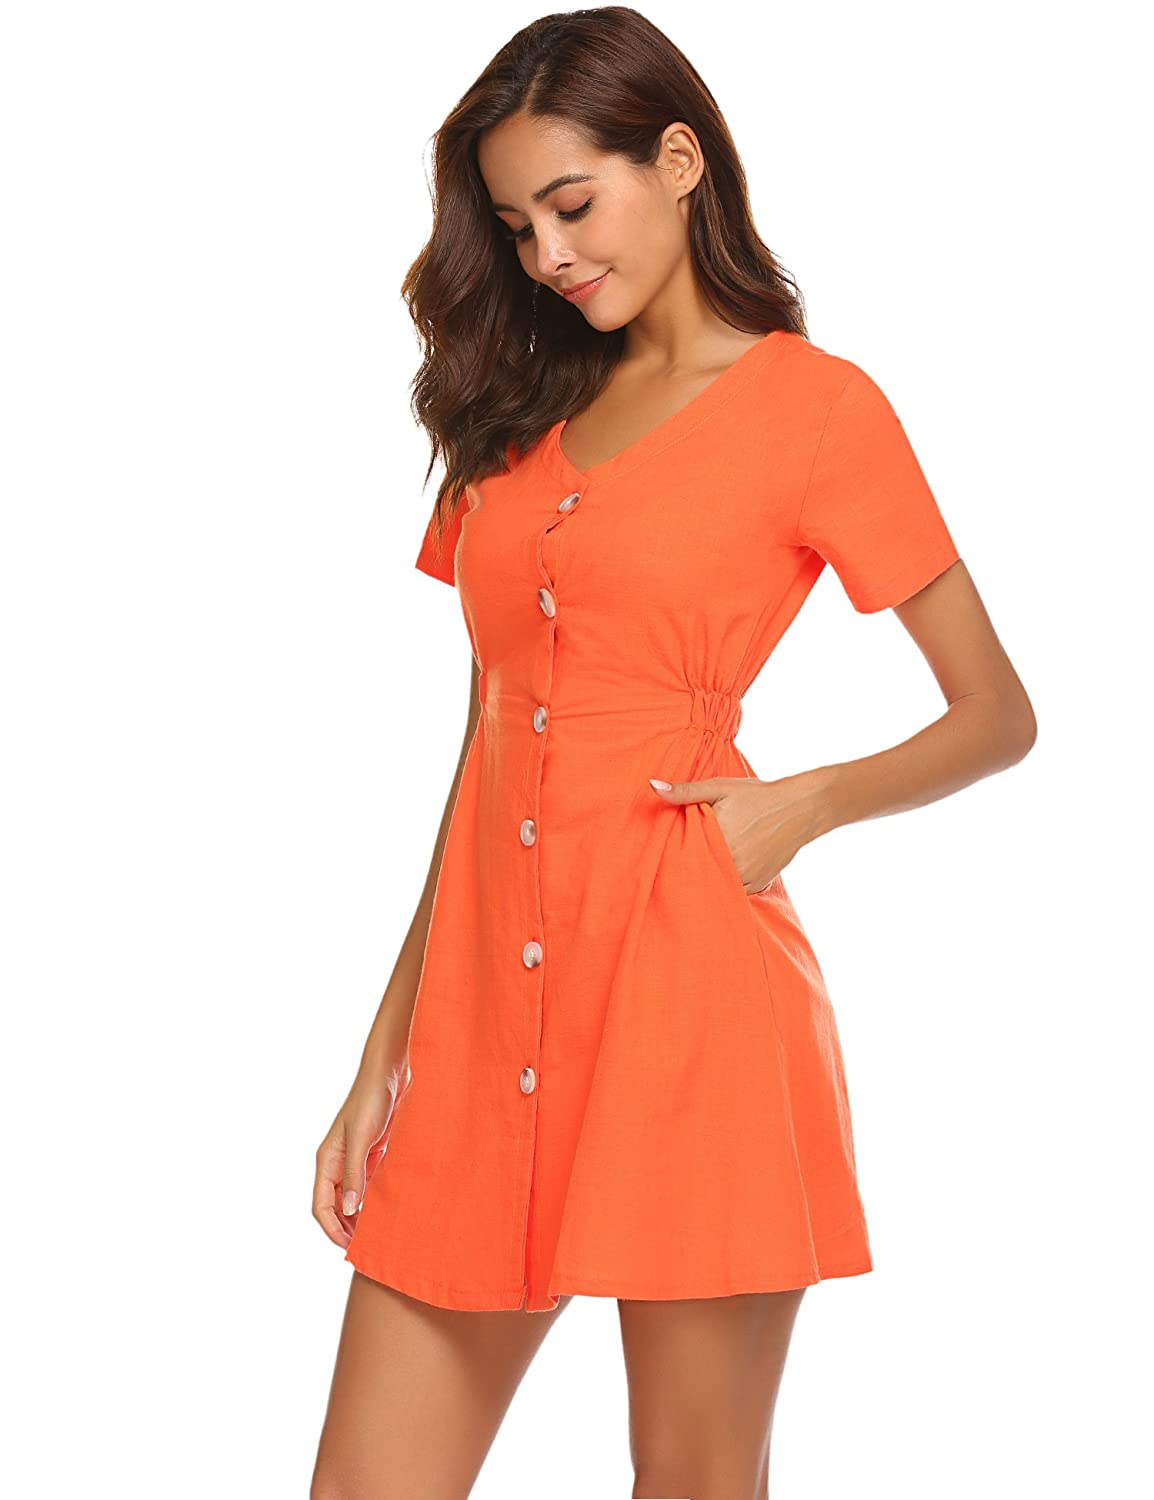 1b02fc9c64d6 Halife Women's Summer Short Sleeve V Neck Button Down Swing Mini Dress with  Pockets at Amazon Women's Clothing store: